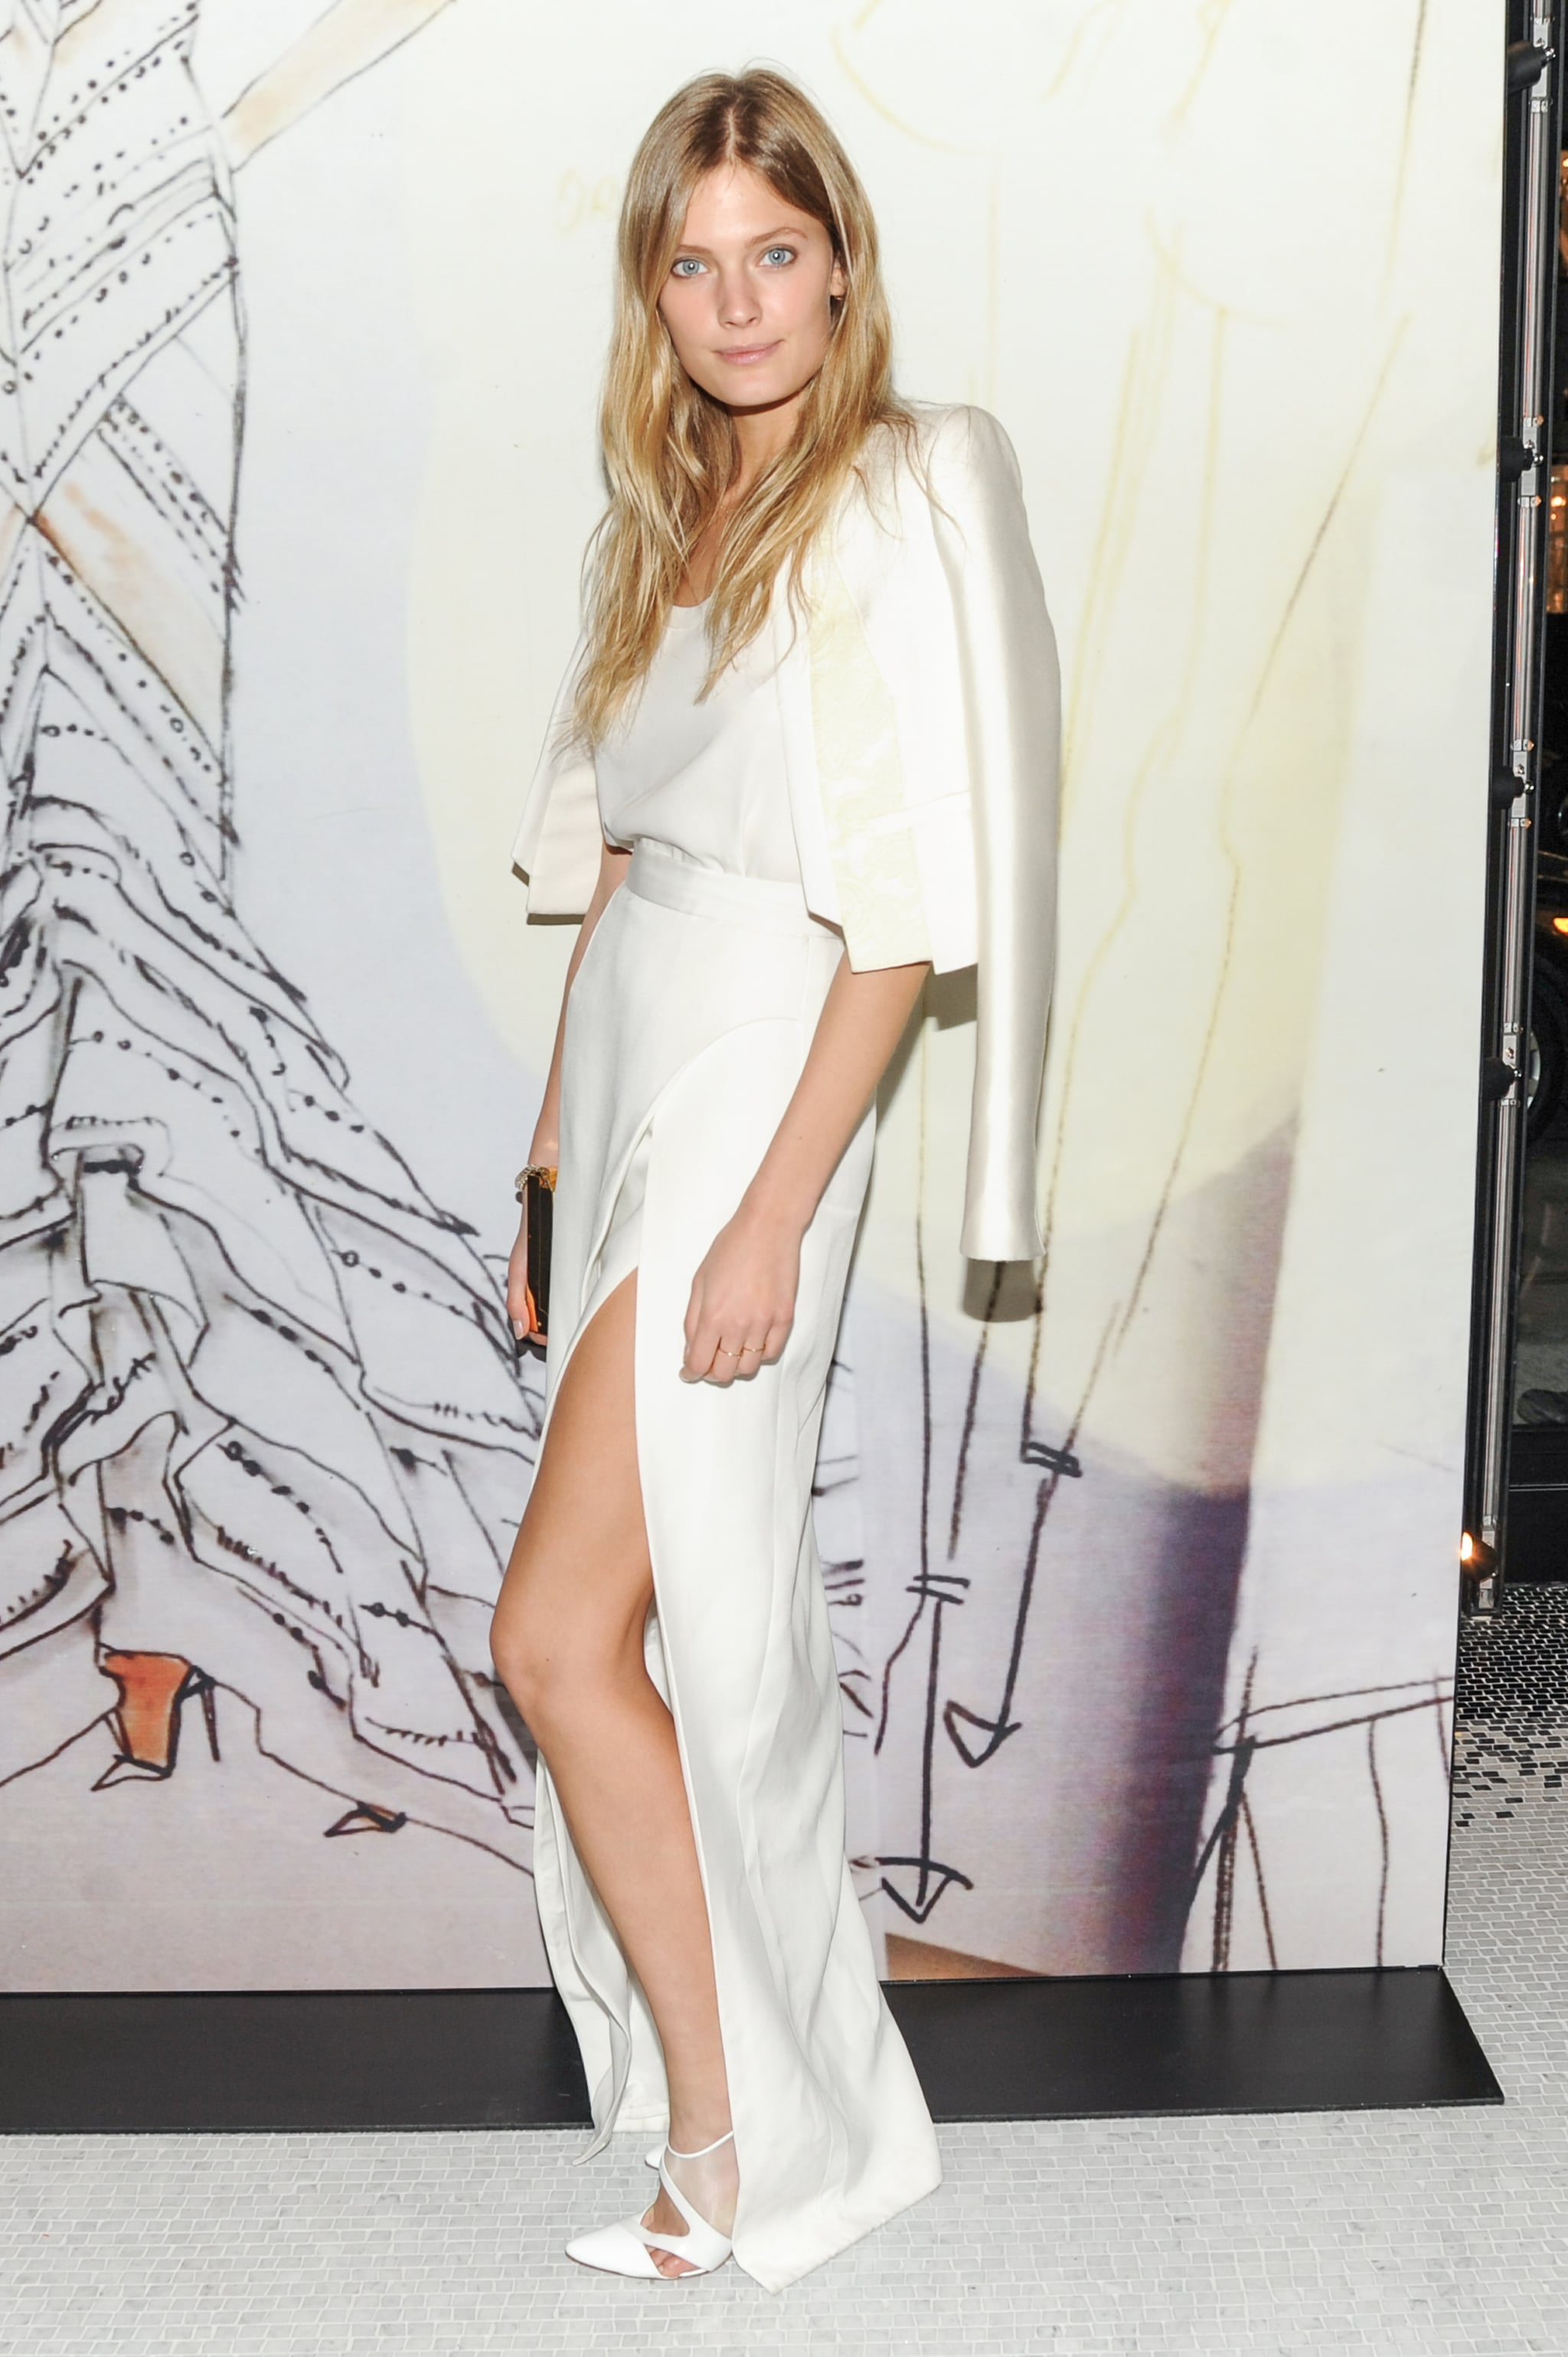 Constance Jablonski at the opening of the Madison Avenue J. Mendel boutique.